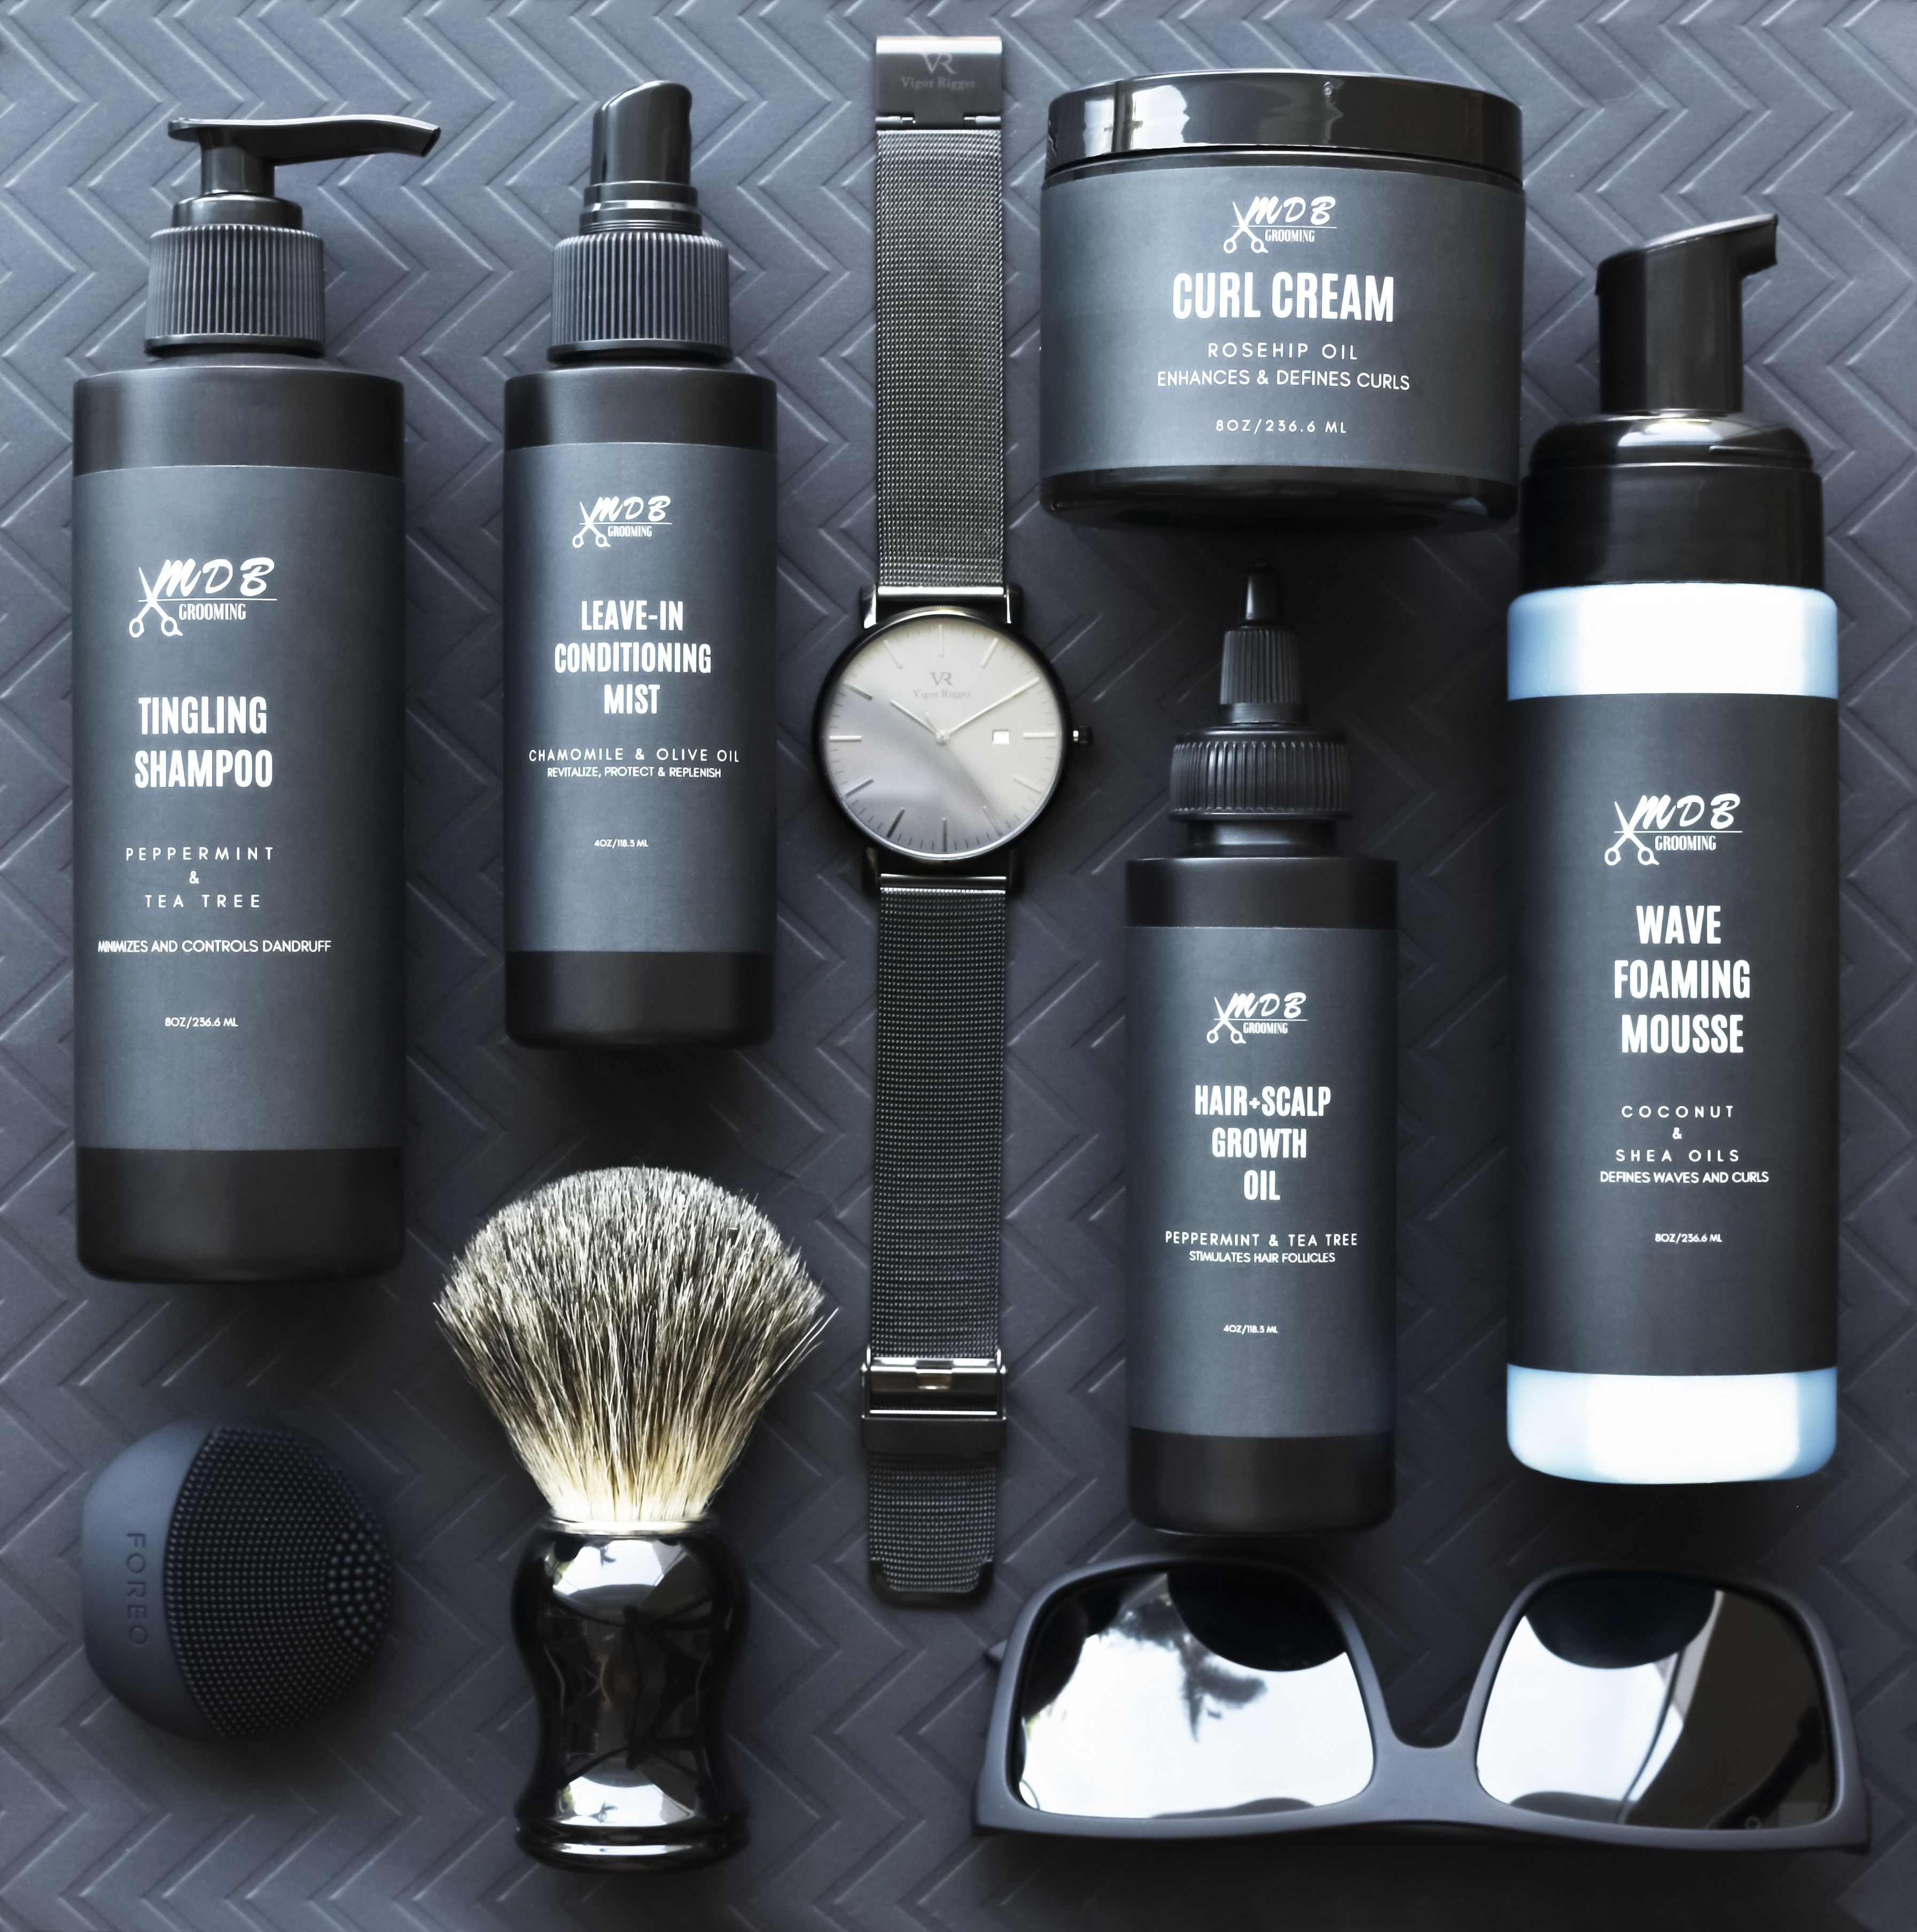 Mdbgrooming Men Grooming Product Including Shampoo Leave In